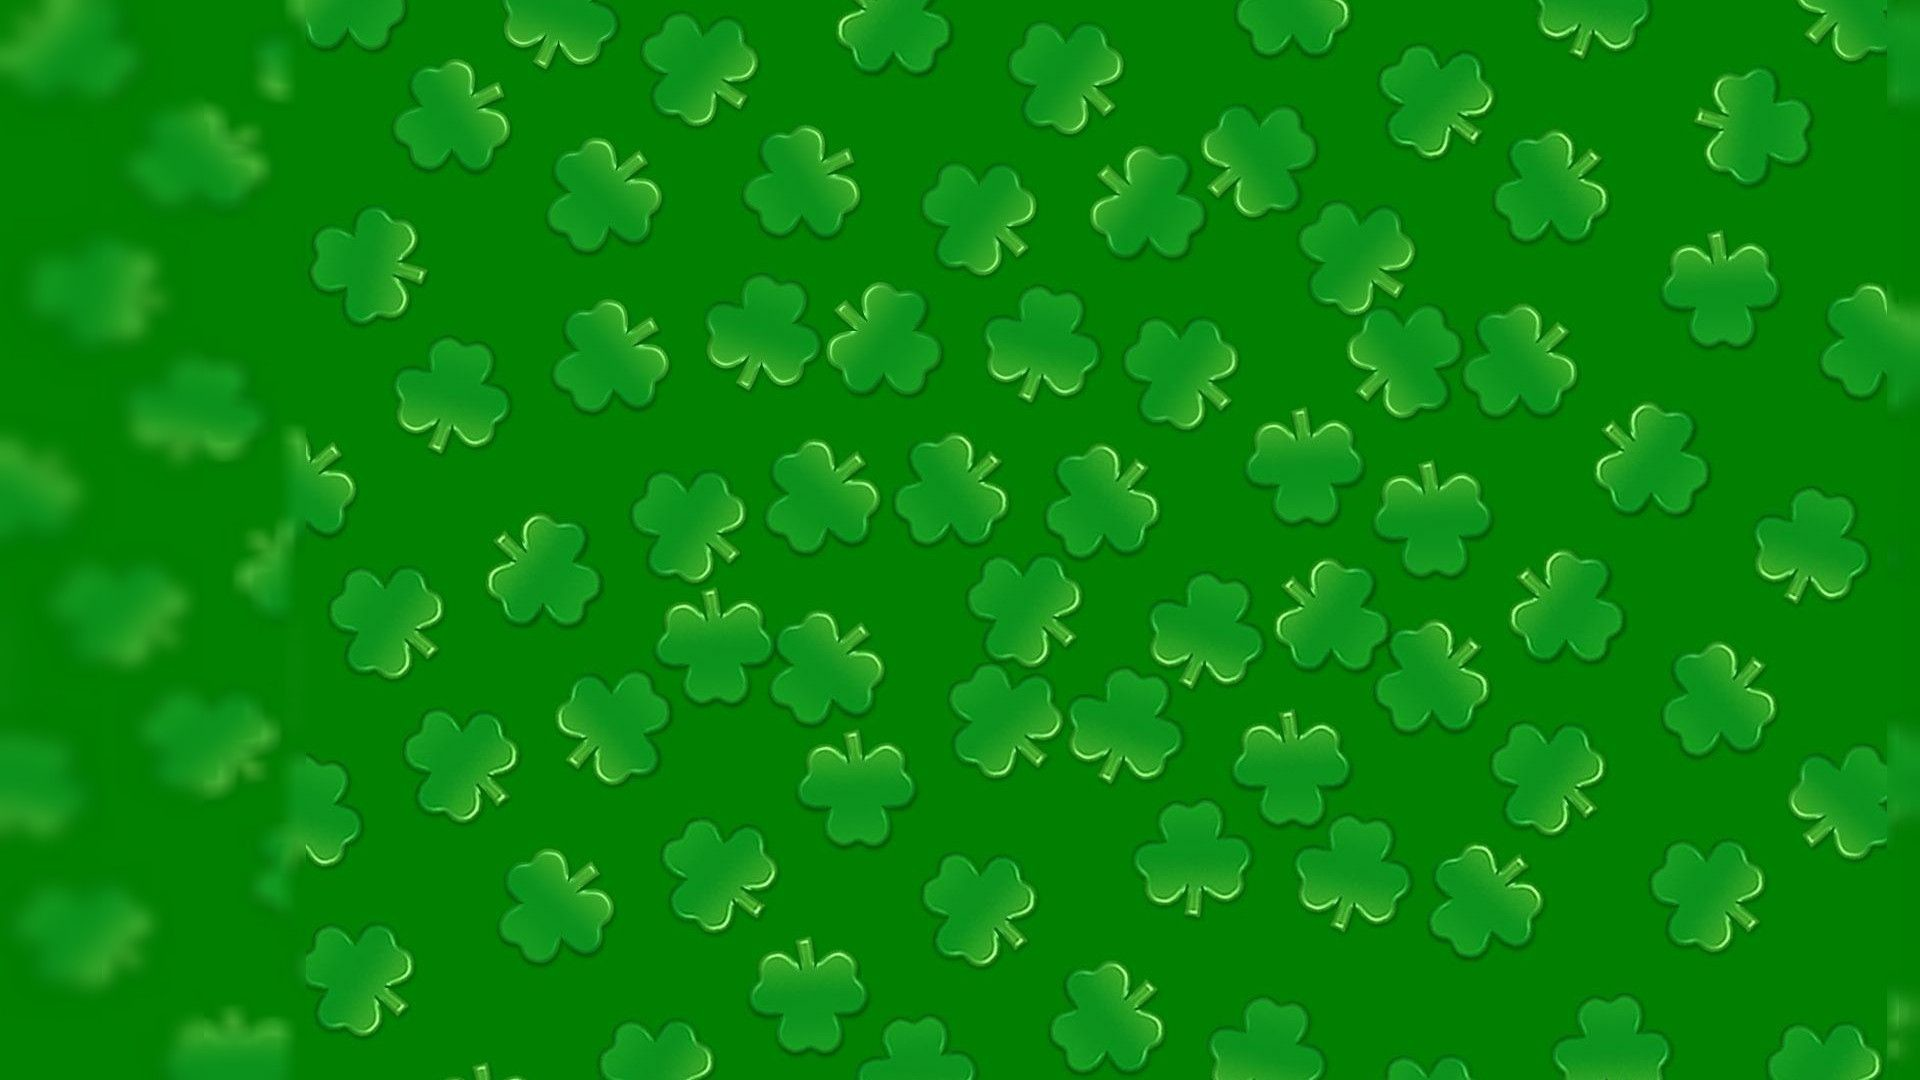 St Patrick Background Images: St Patrick Day Backgrounds (47+ Images